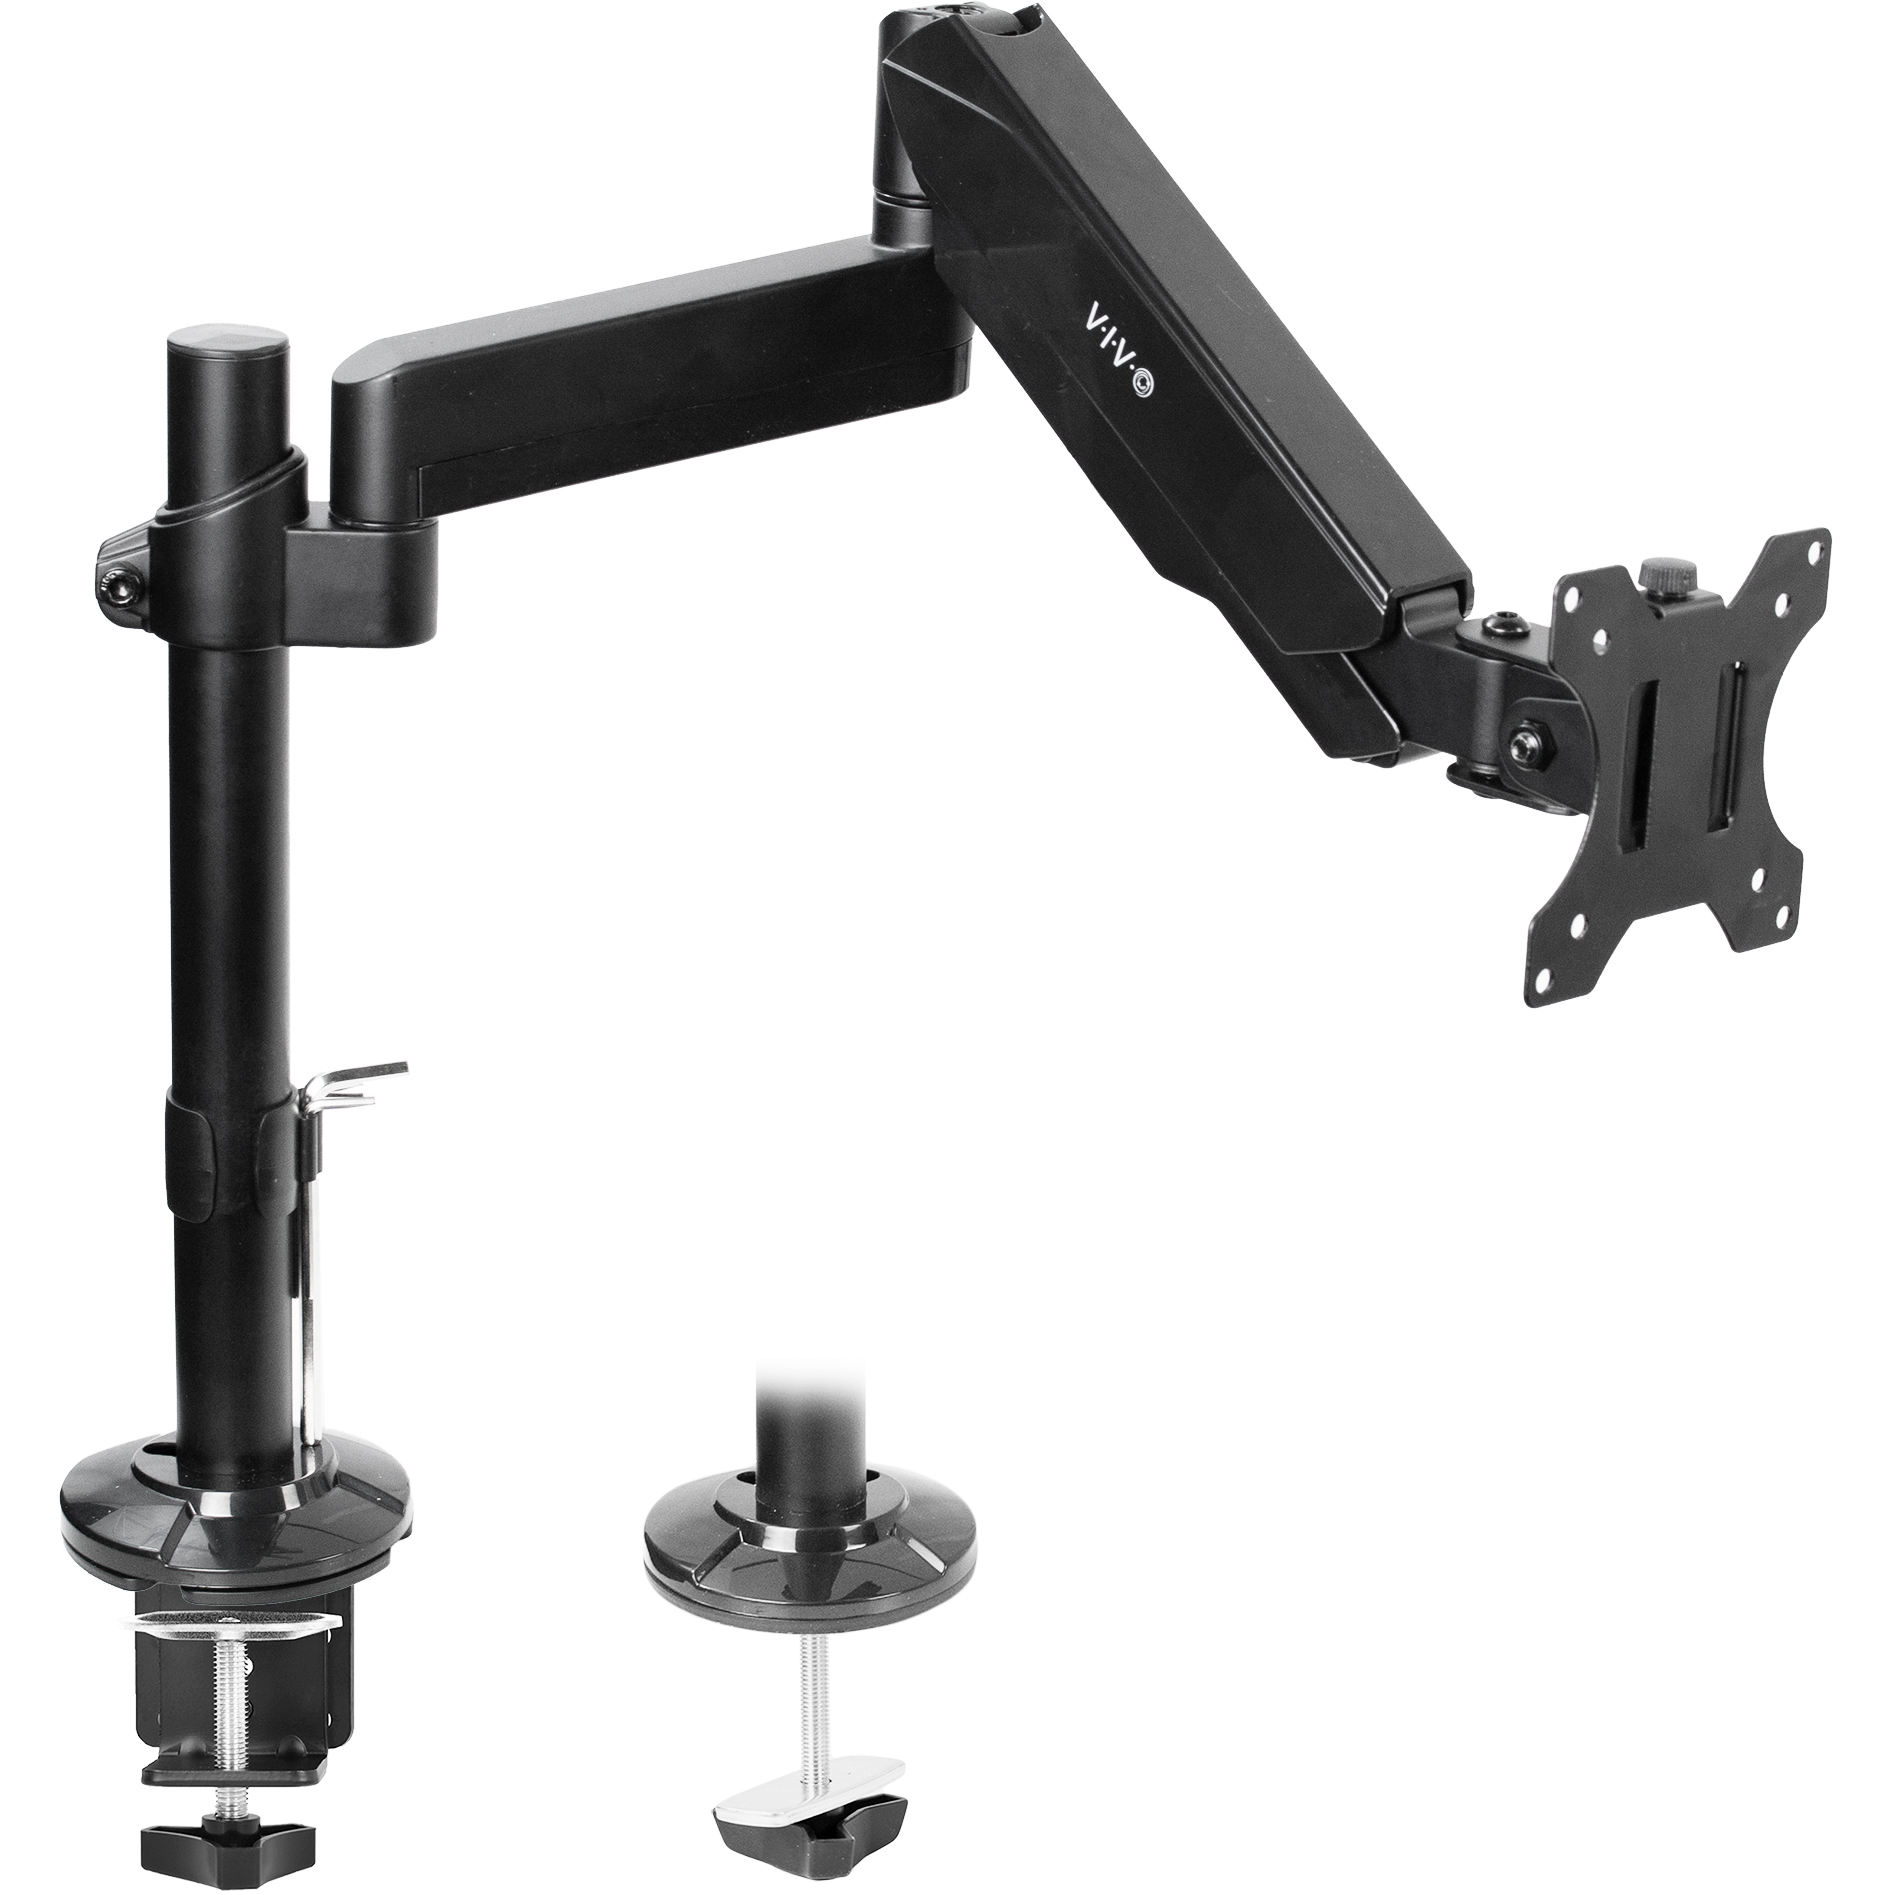 "VIVO Articulating Single Pneumatic Arm Desk Mount Stand | Fits 1 Standard to UltraWide Screen up to 35"" (STAND-V101H)"